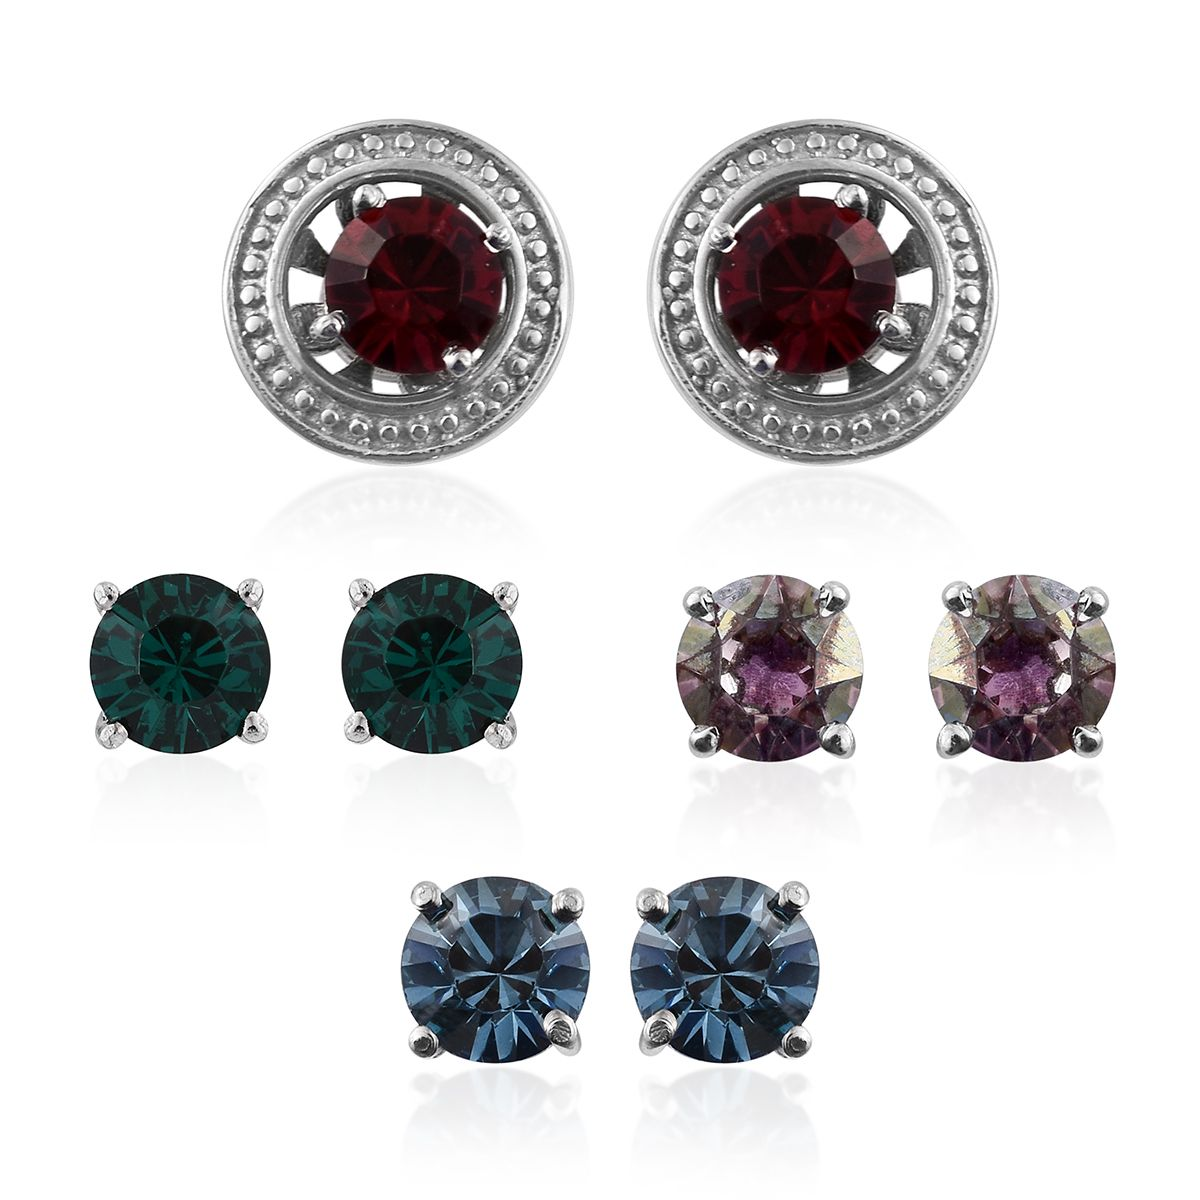 Stainless steel interchangable earrings made with multi for Swarovski jewelry online store